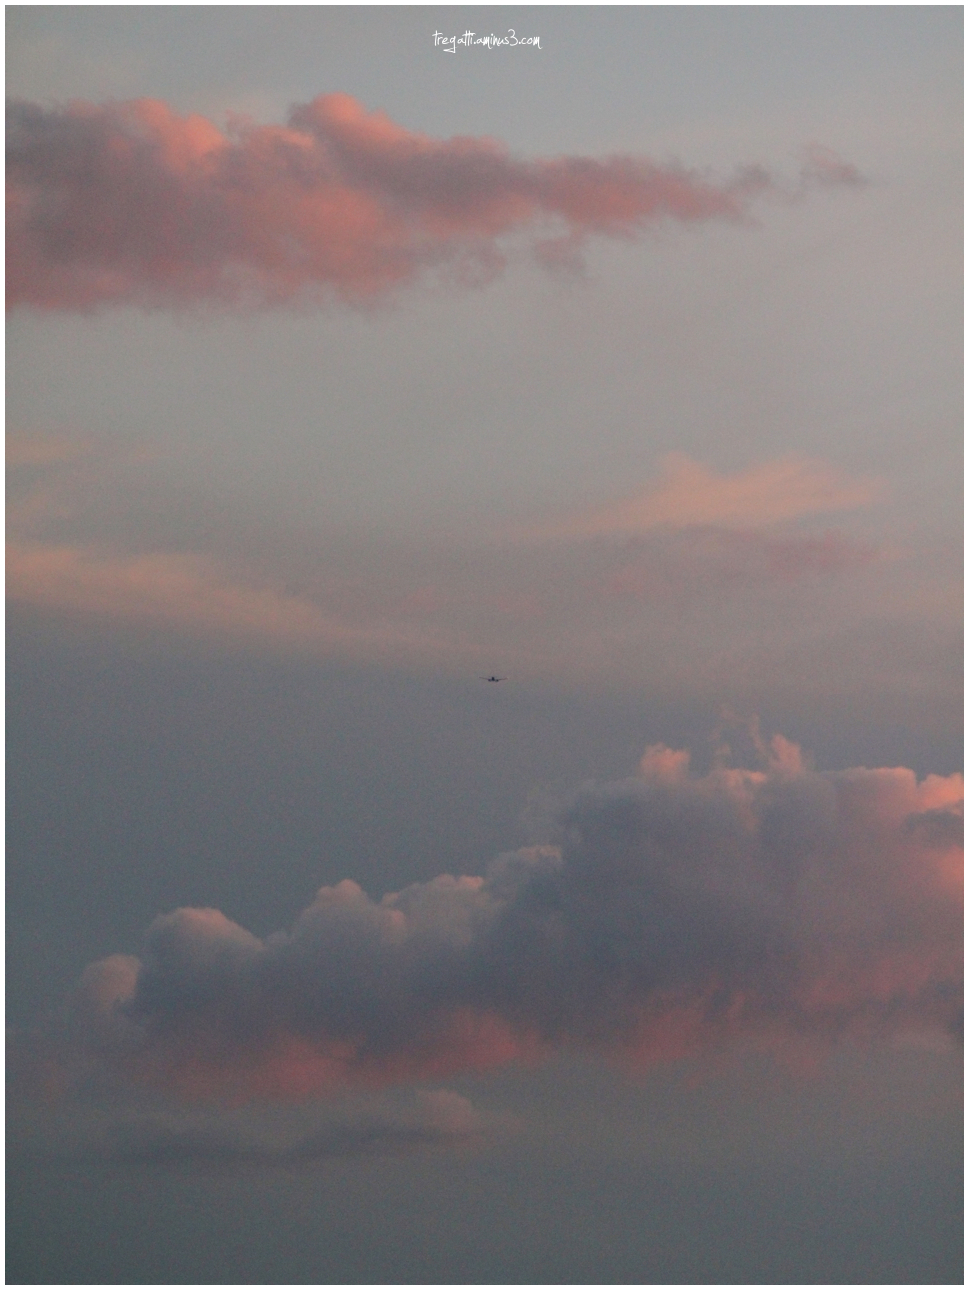 clouds, plane, sunset